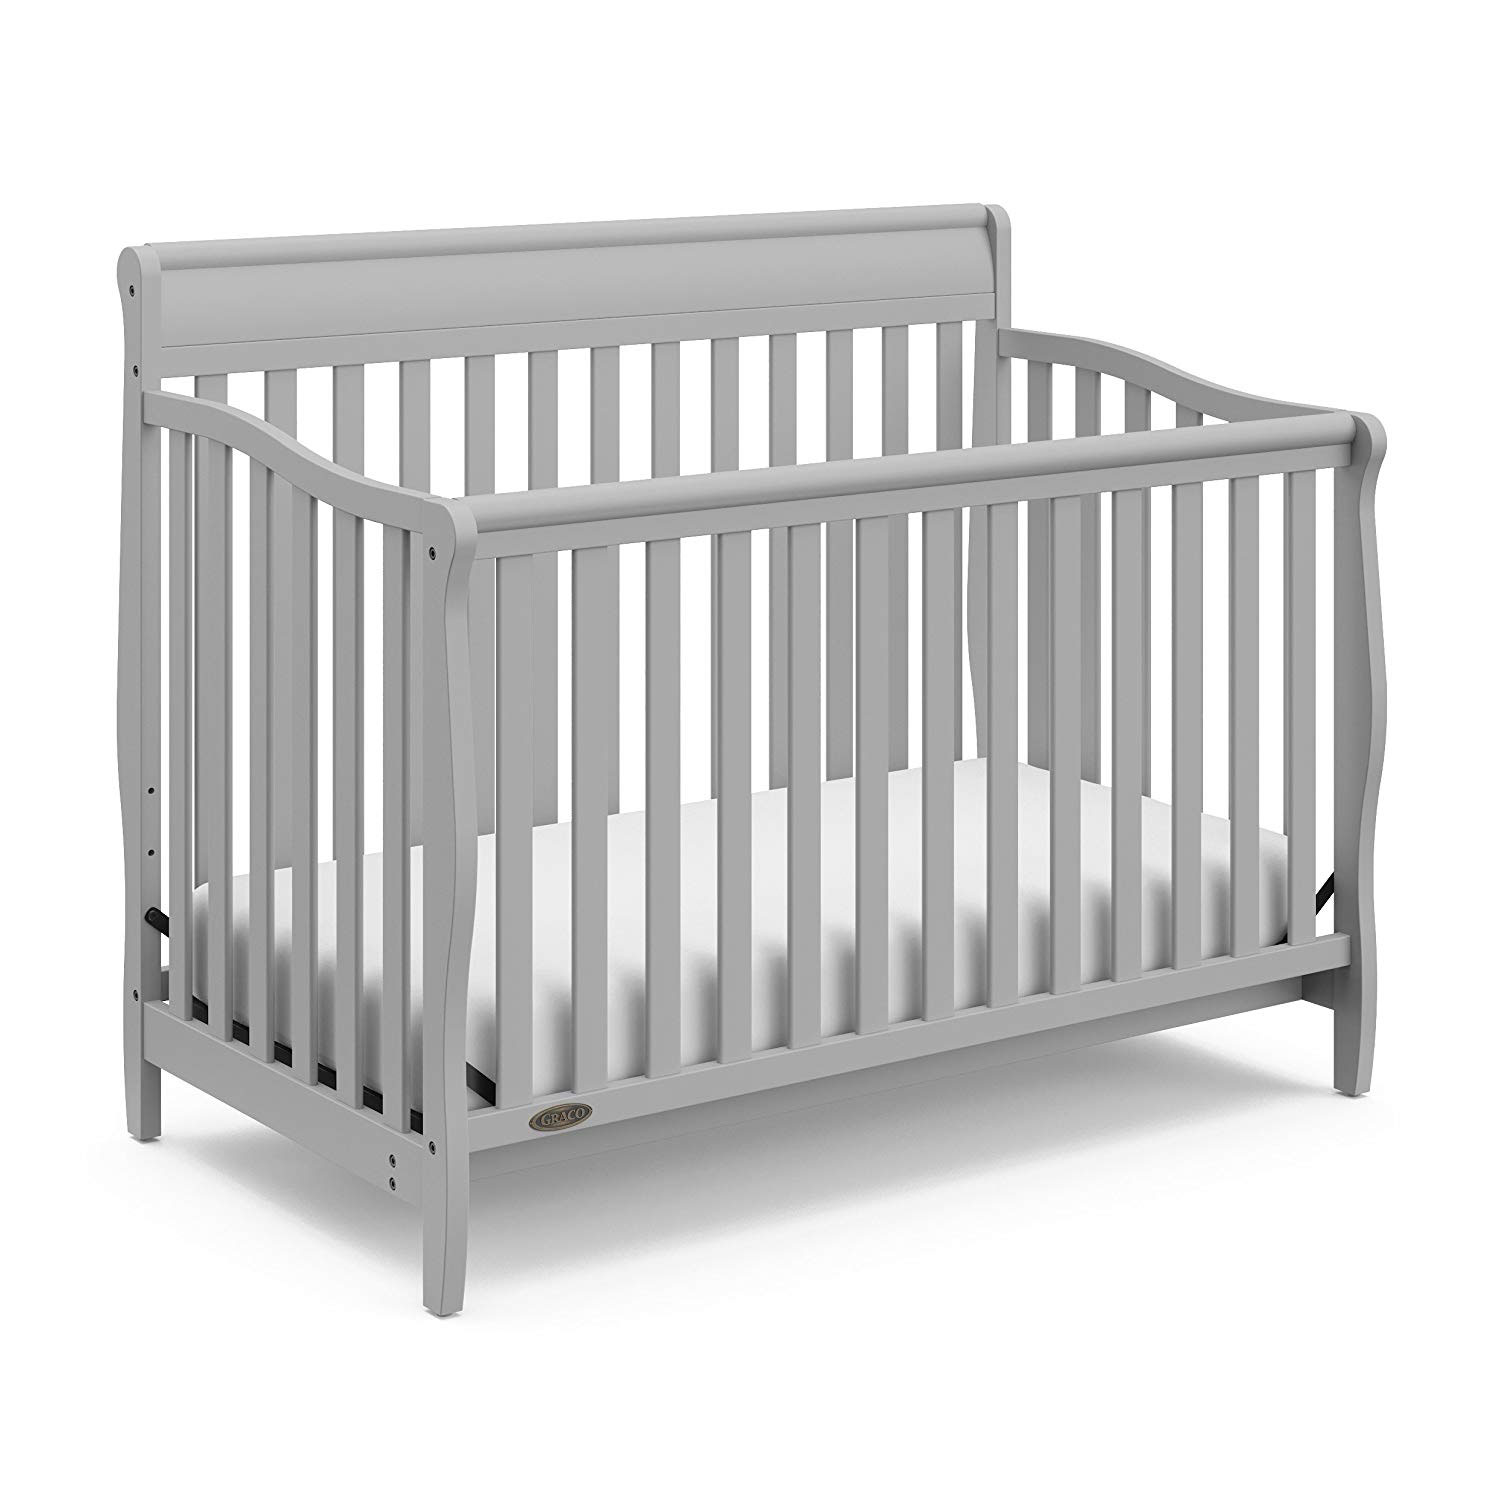 Details about graco stanton durable 4 in 1 convertible baby toddler child crib pebble gray